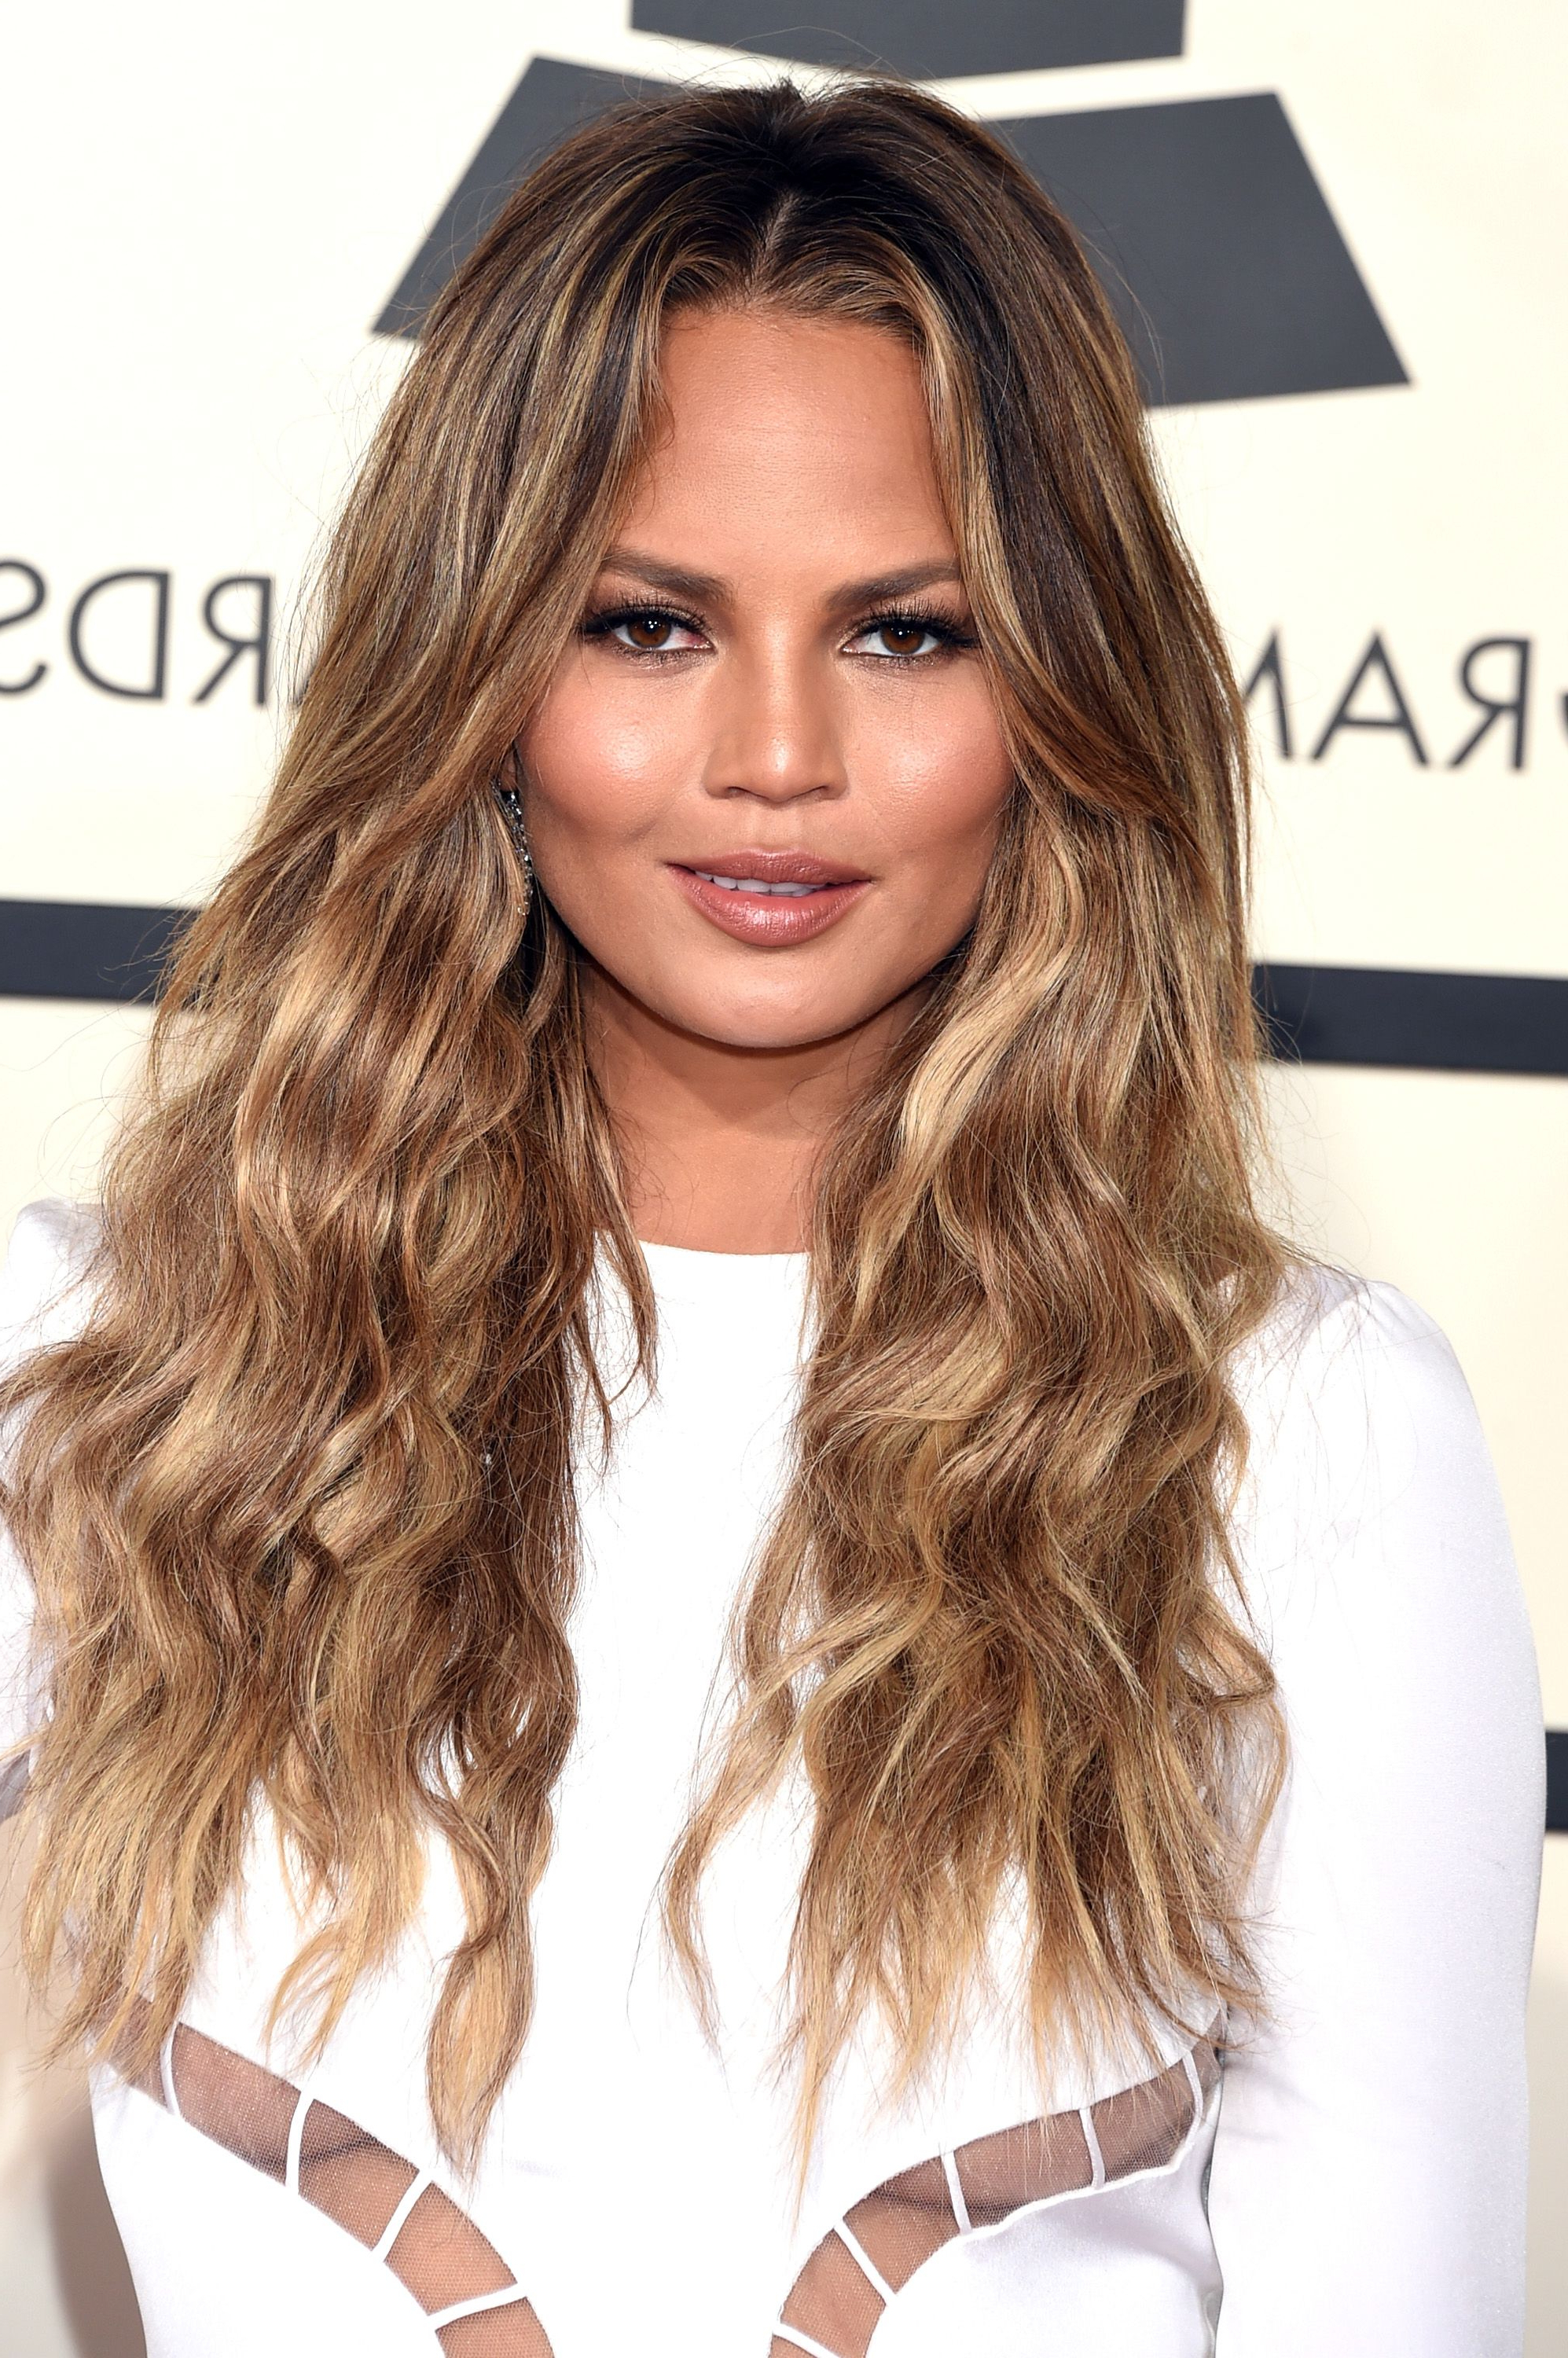 Current Swoopy Layers Hairstyles For Mid Length Hair Throughout 40 Best Layered Haircuts, Hairstyles & Trends For  (View 3 of 20)